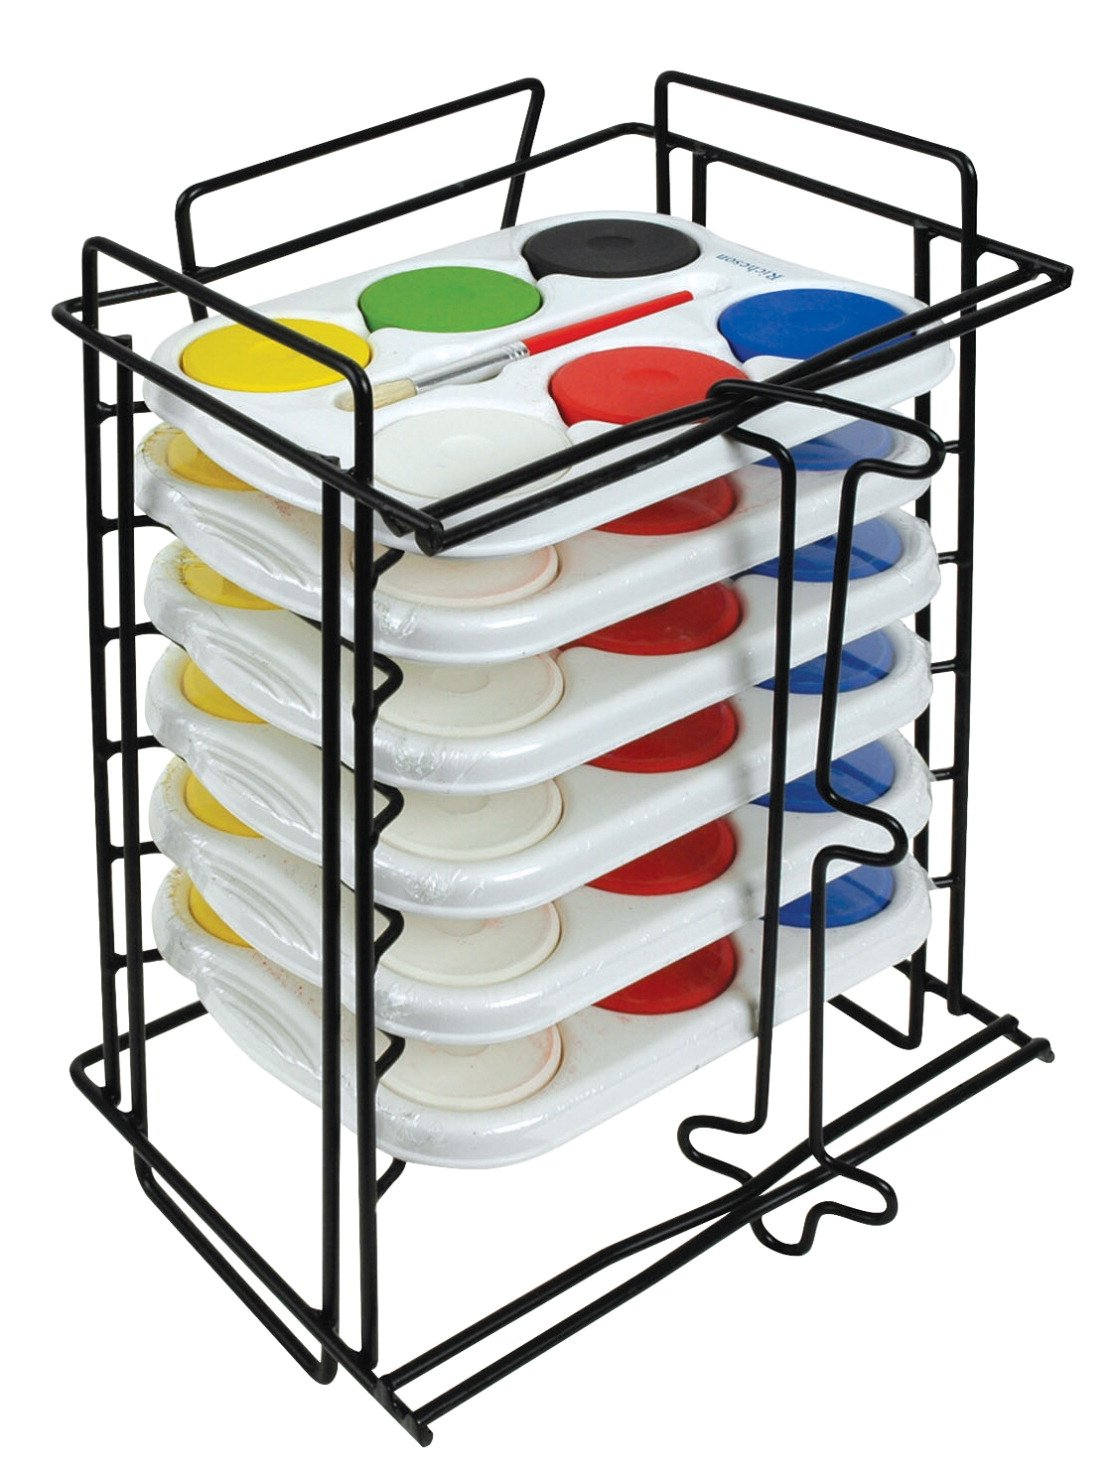 Jack Richeson 6 Tempera Sets in 6 Hole Trays with Rack by Jack Richeson